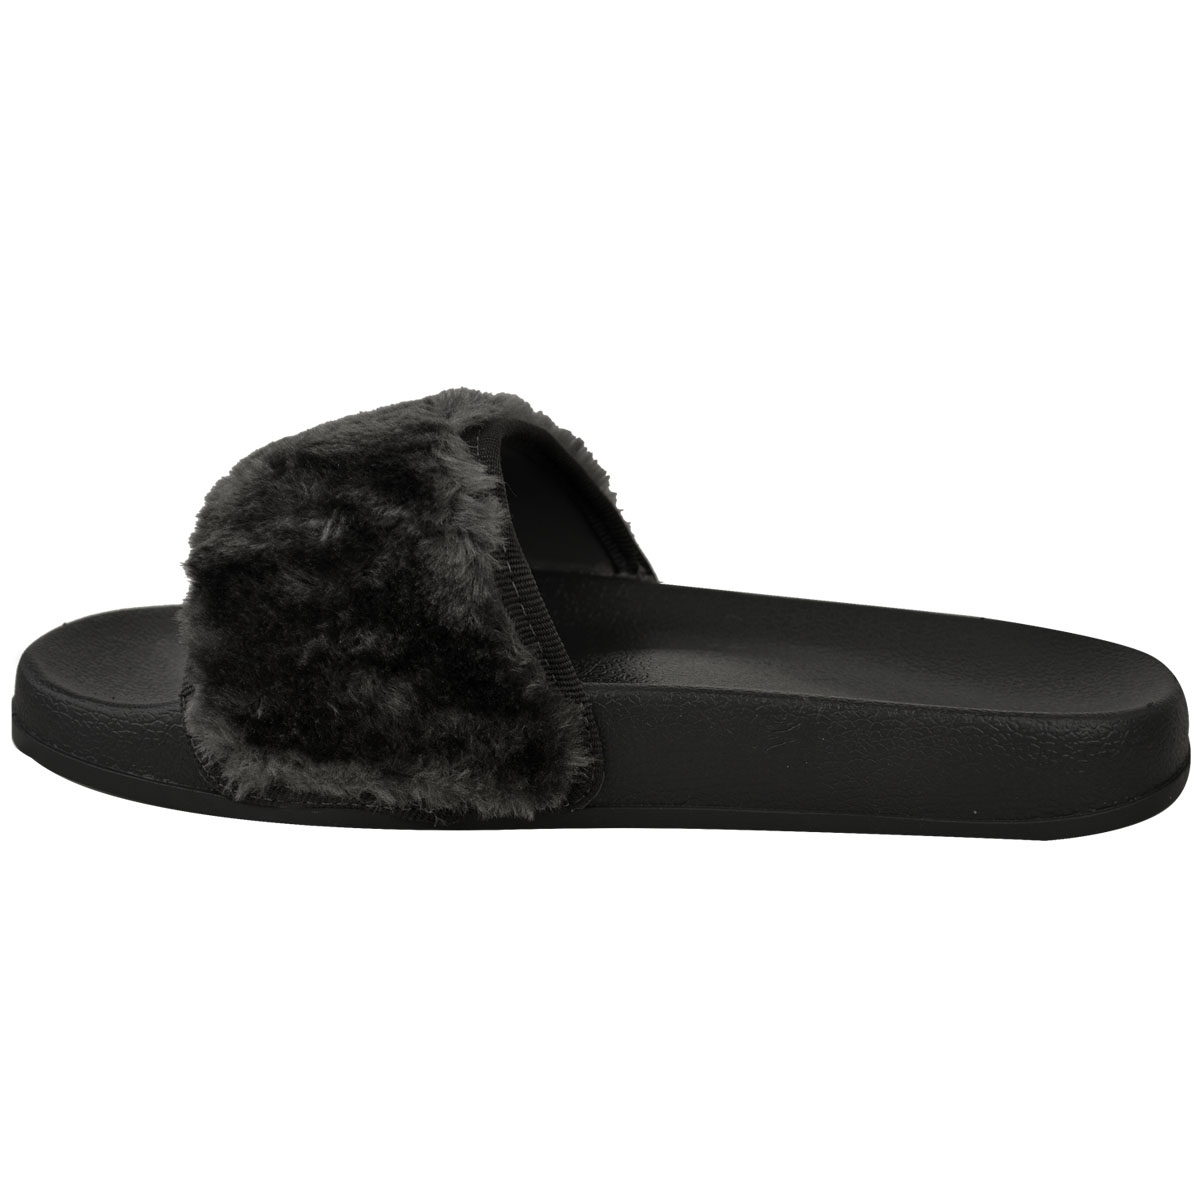 Faux Fur Fluffy Sliders Flat Celebrity Black Designer ...